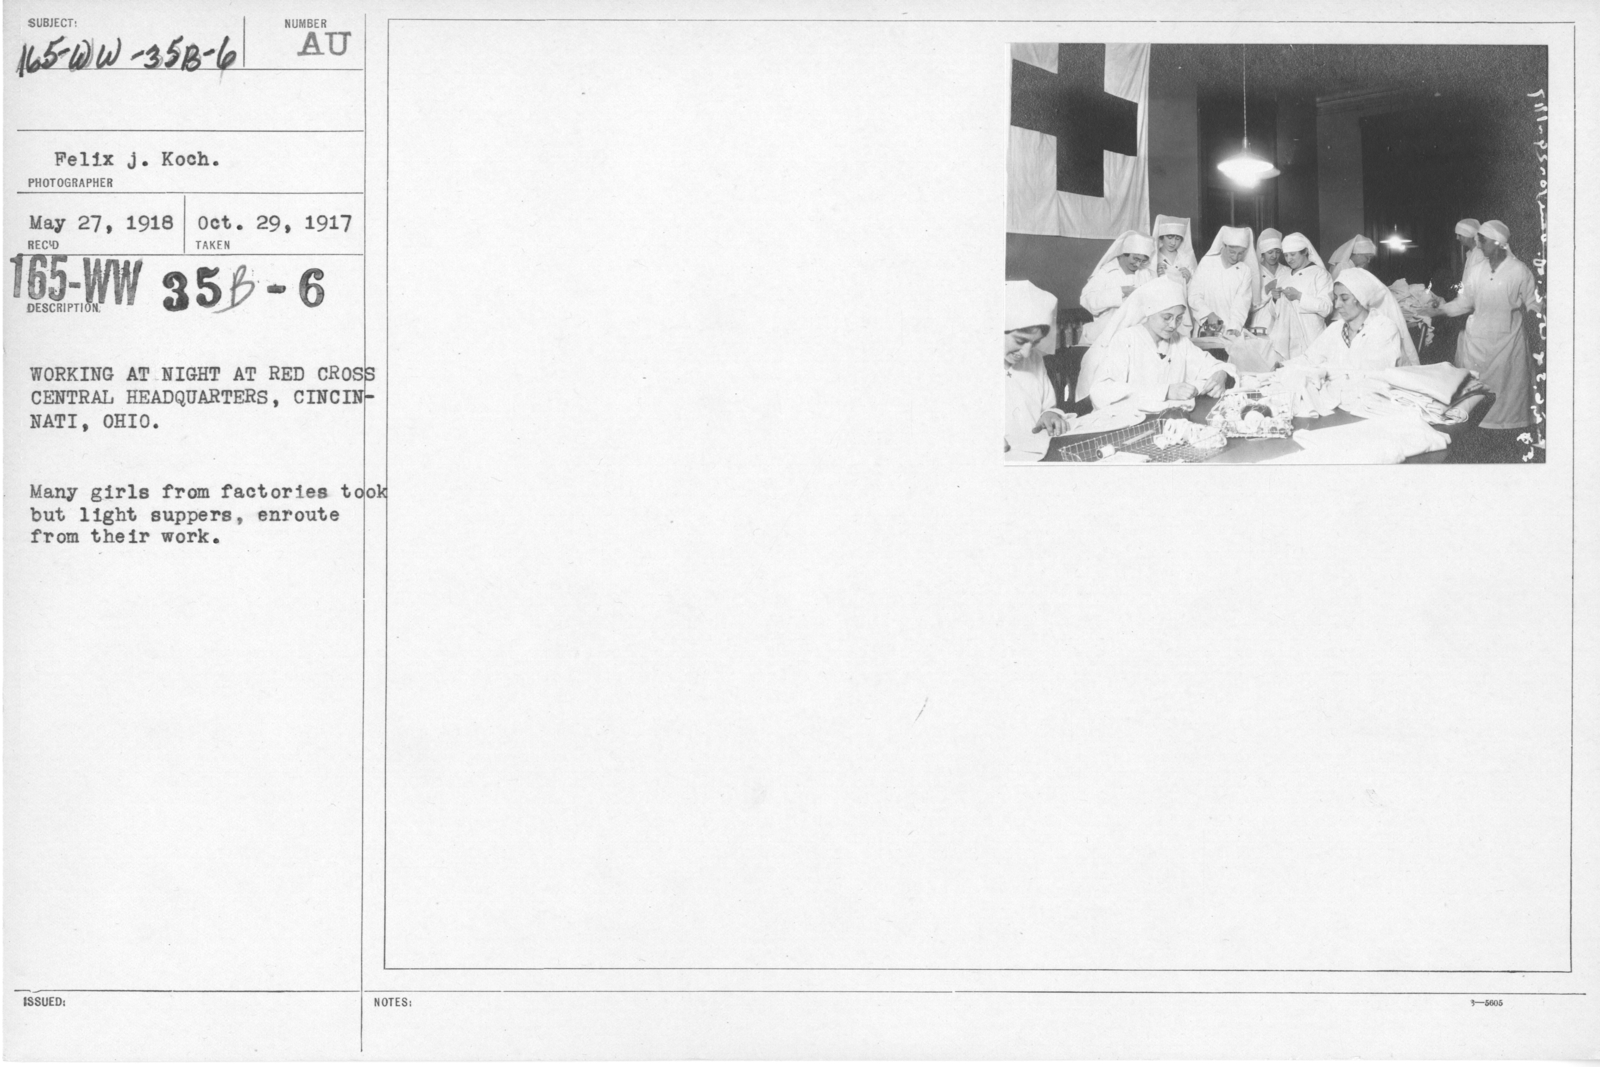 American Red Cross - Classes in Red Cross Work (workrooms and classes) - Working at night at Red Cross Central Headquarters, Cincinnati, Ohio. Many girls from factories took but light suppers, enroute from their work